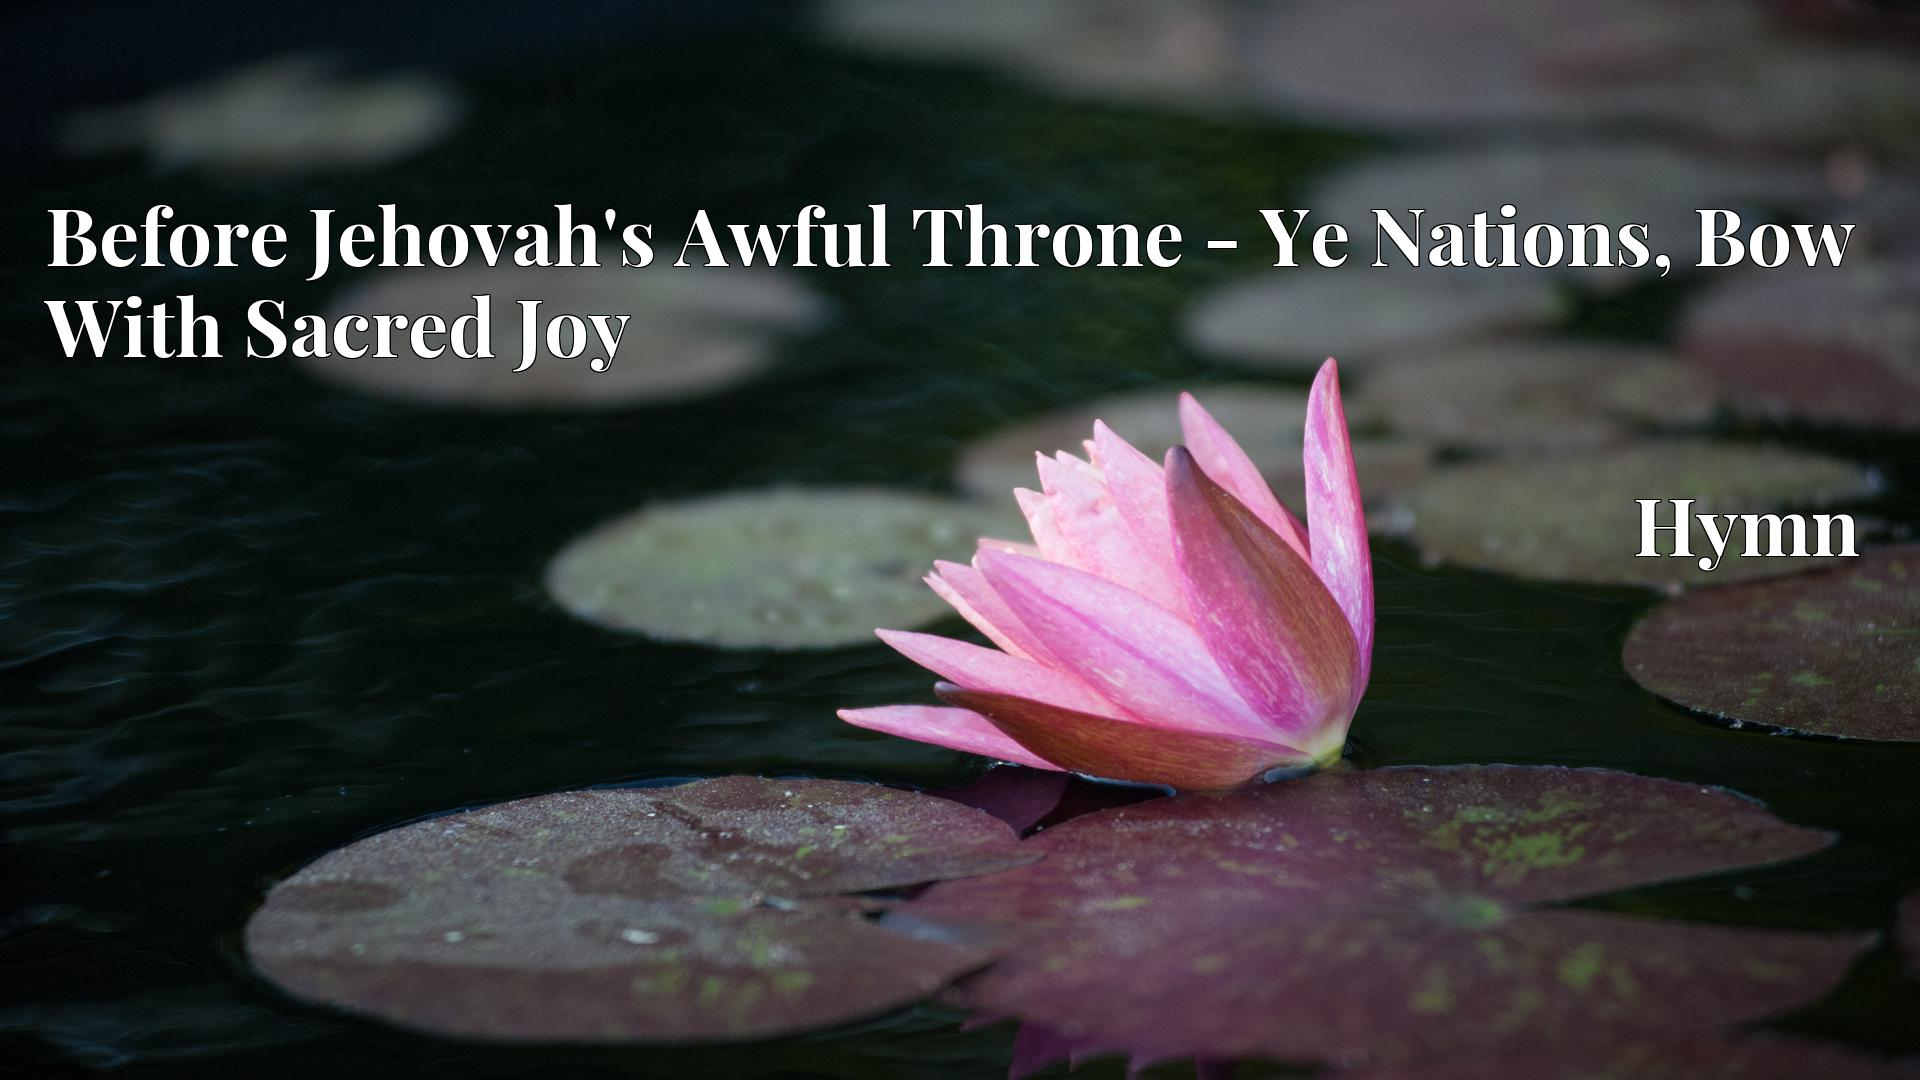 Before Jehovah's Awful Throne - Ye Nations, Bow With Sacred Joy - Hymn